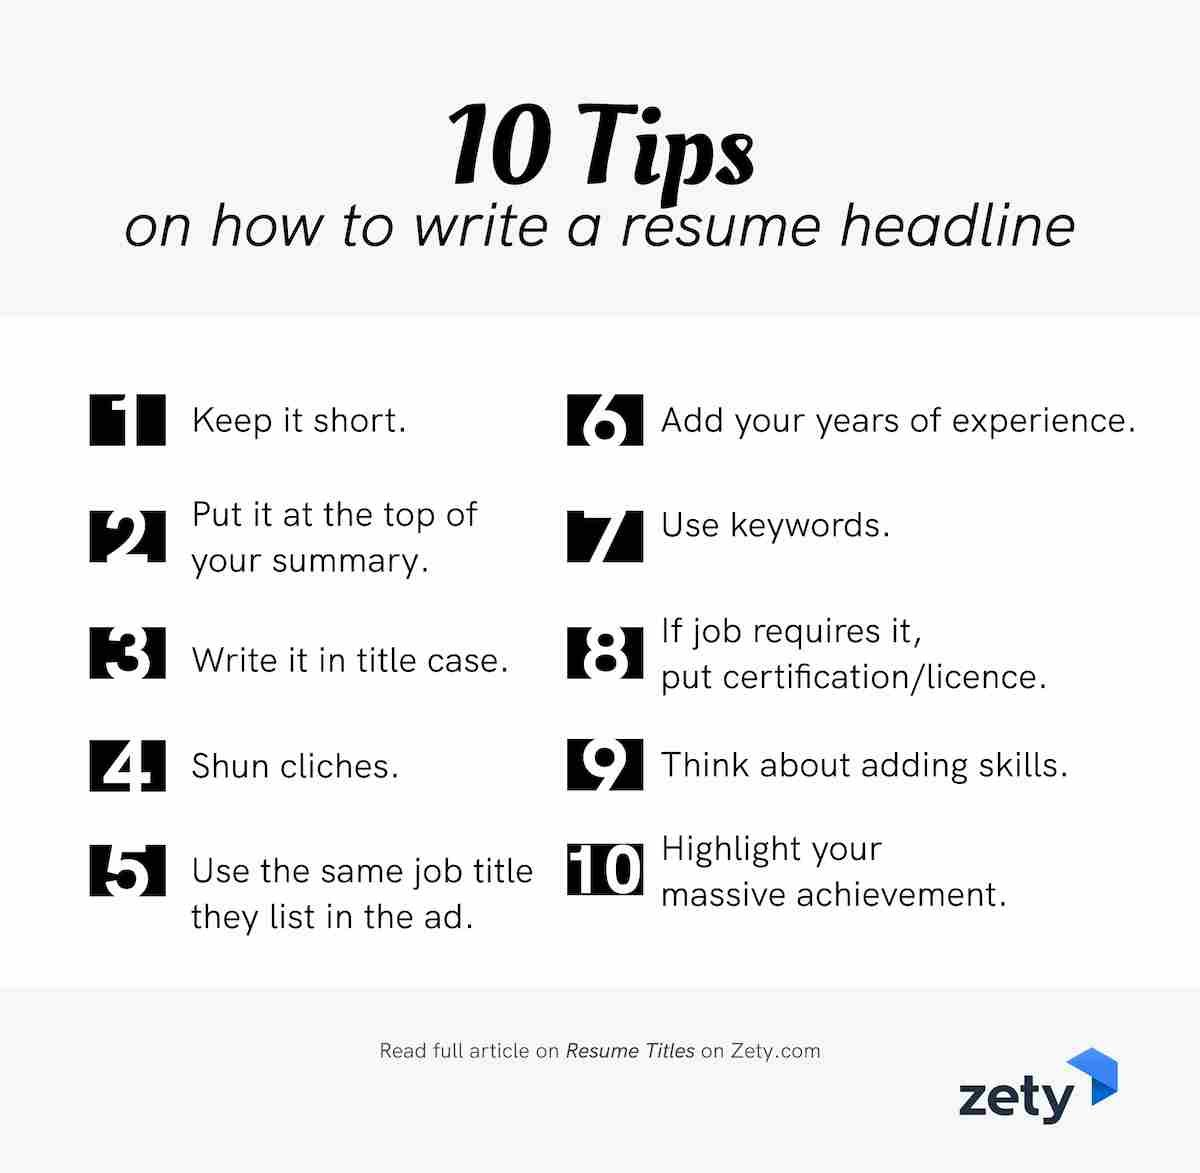 How to Write a Resume Headline